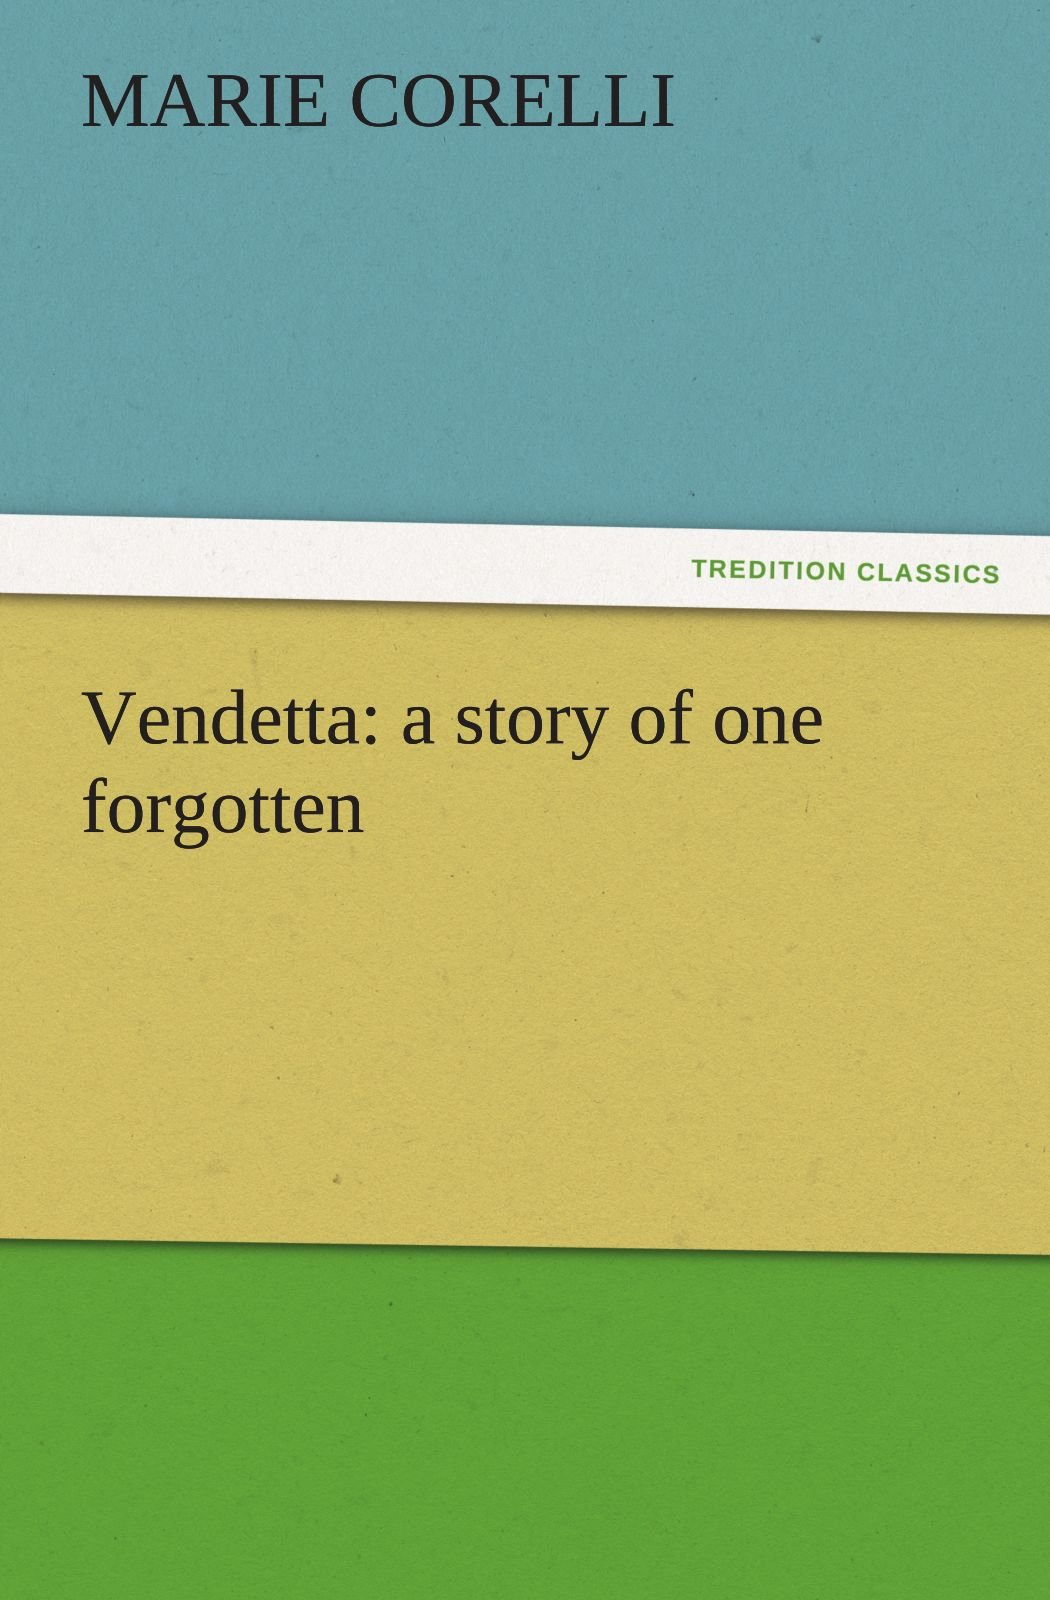 Download Vendetta: a story of one forgotten (TREDITION CLASSICS) ebook